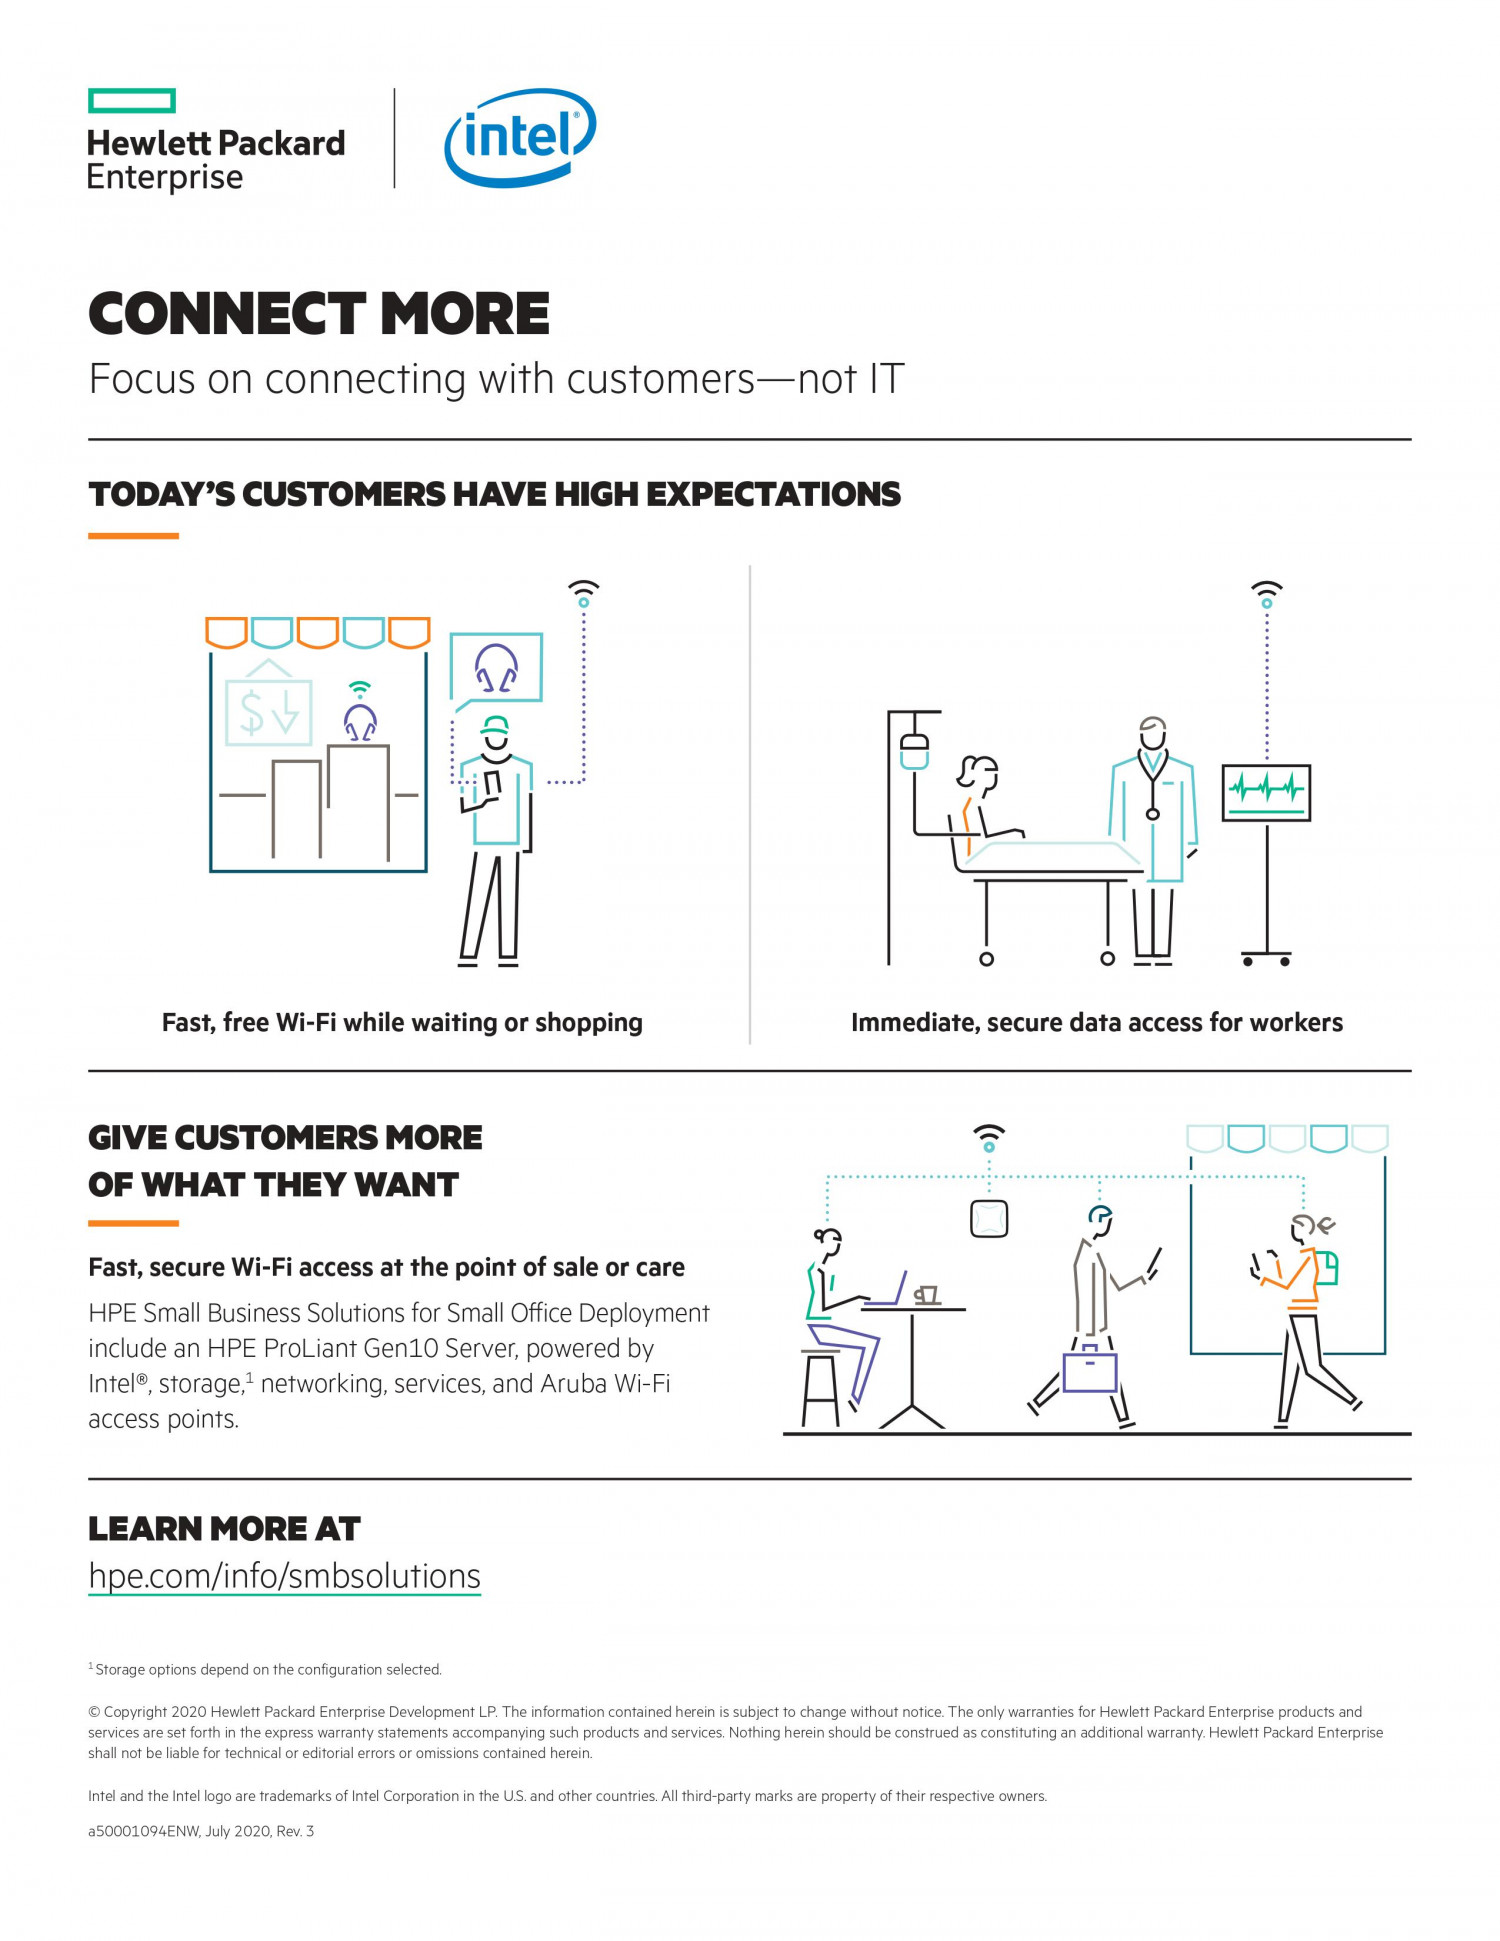 HPE Small Business Solutions Infographic